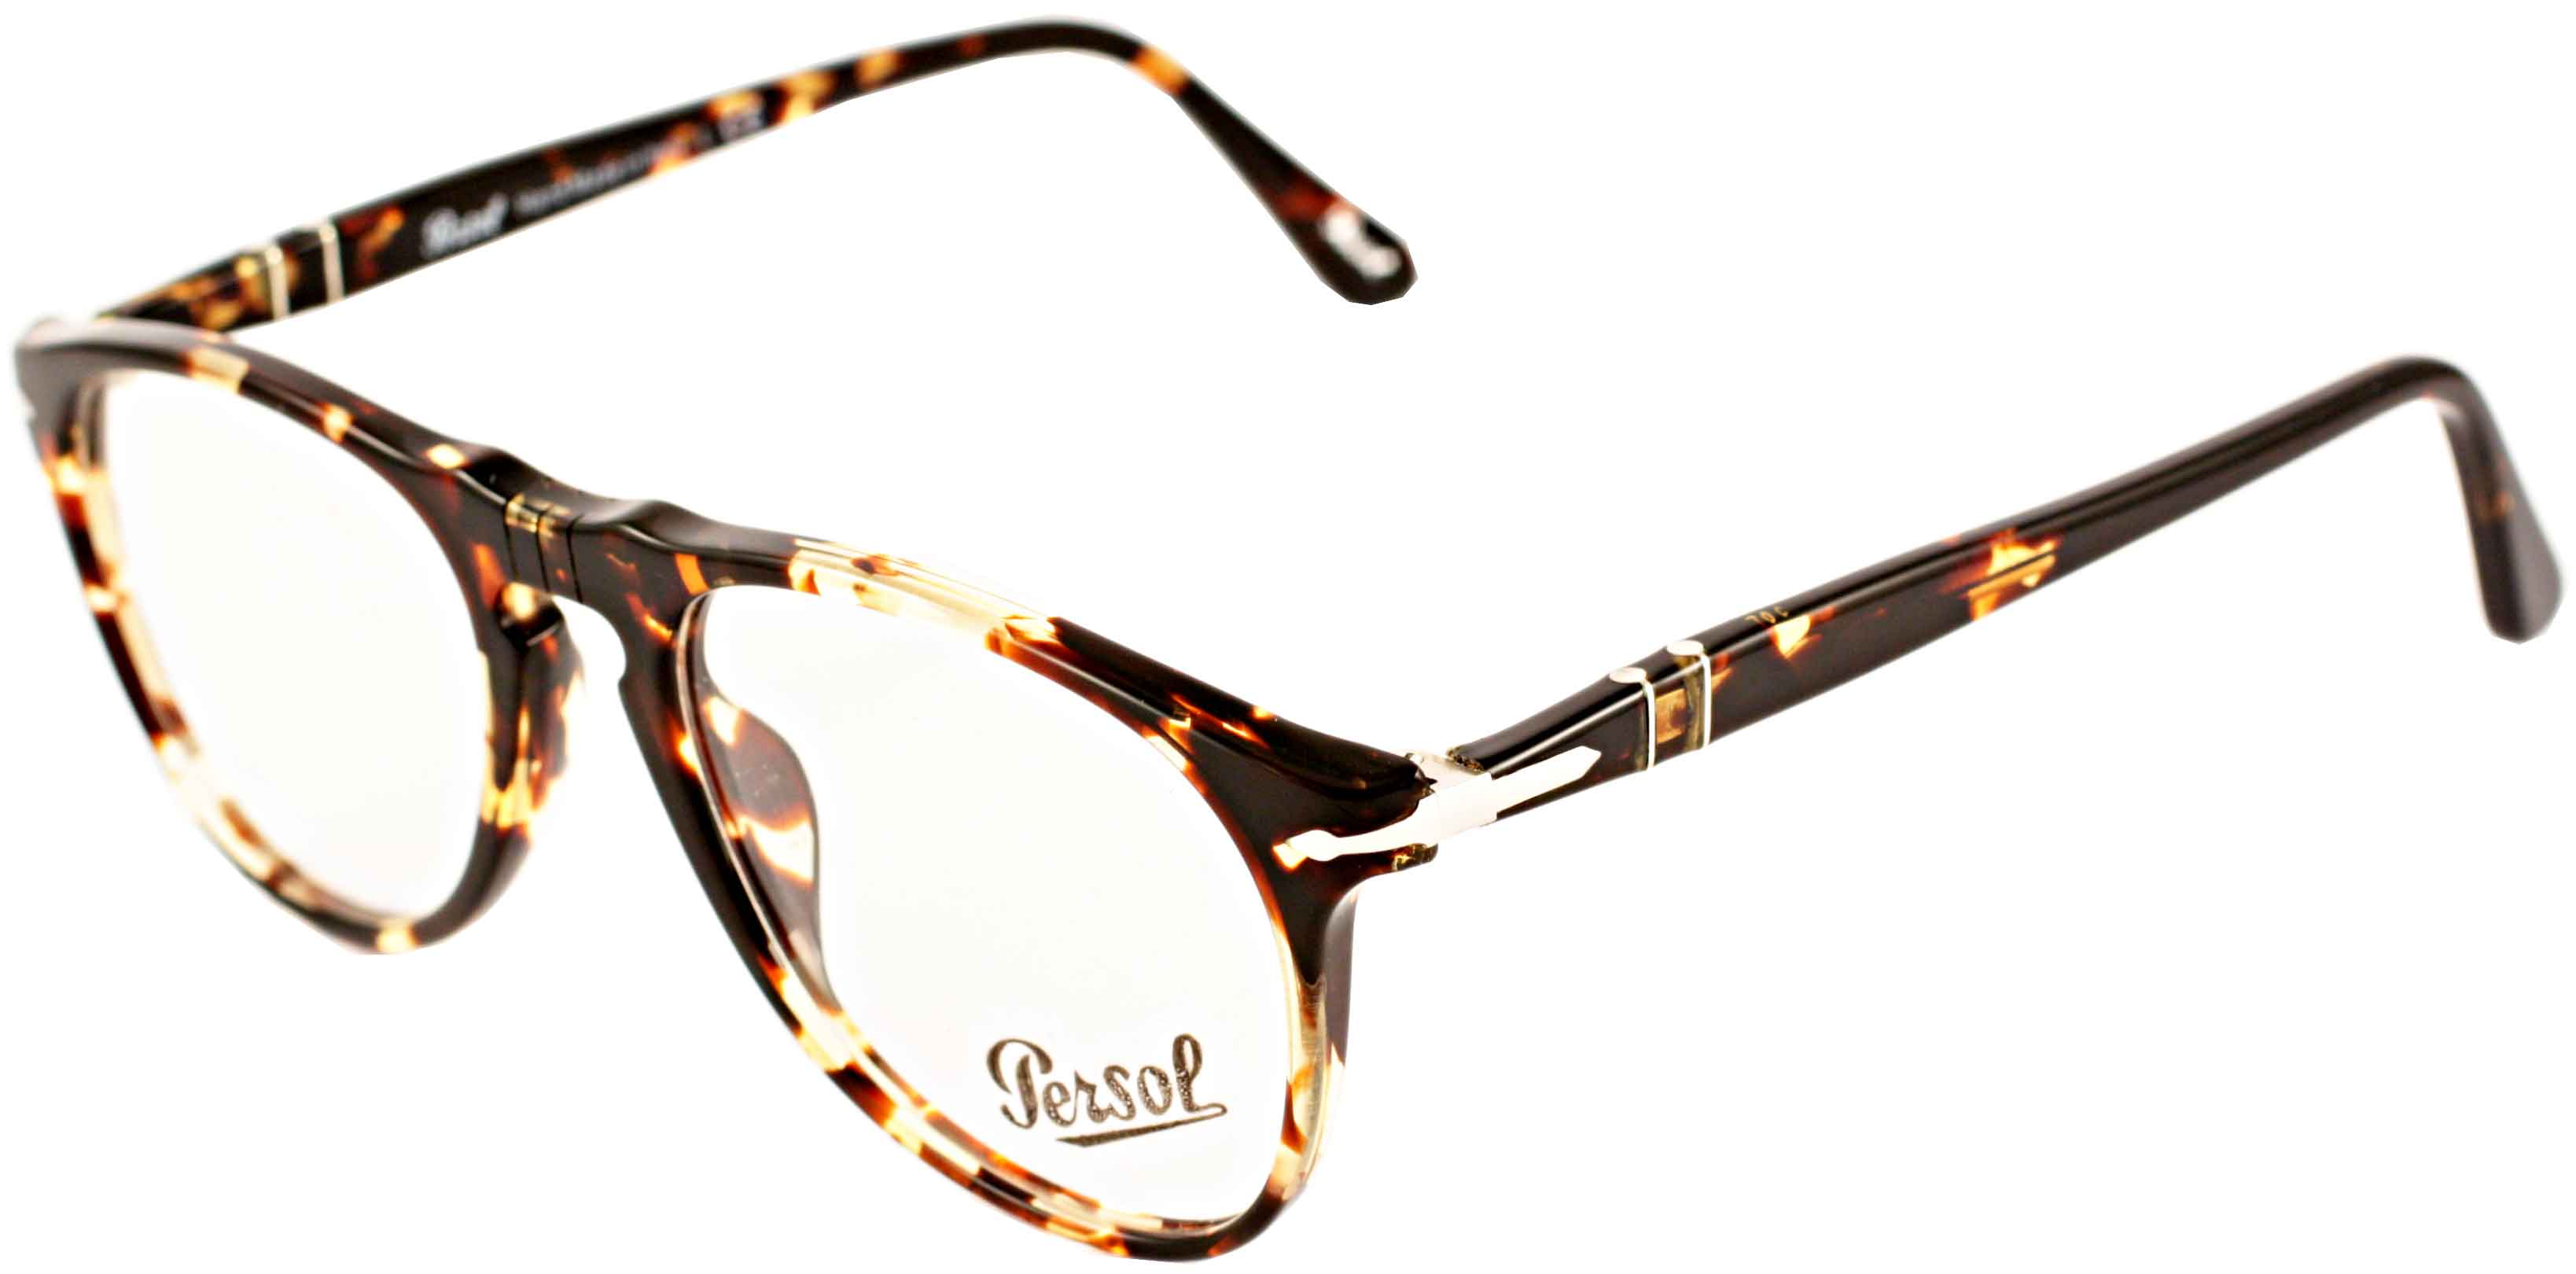 d58b8c583b Eyewearbrands Have Collaborated With Persol